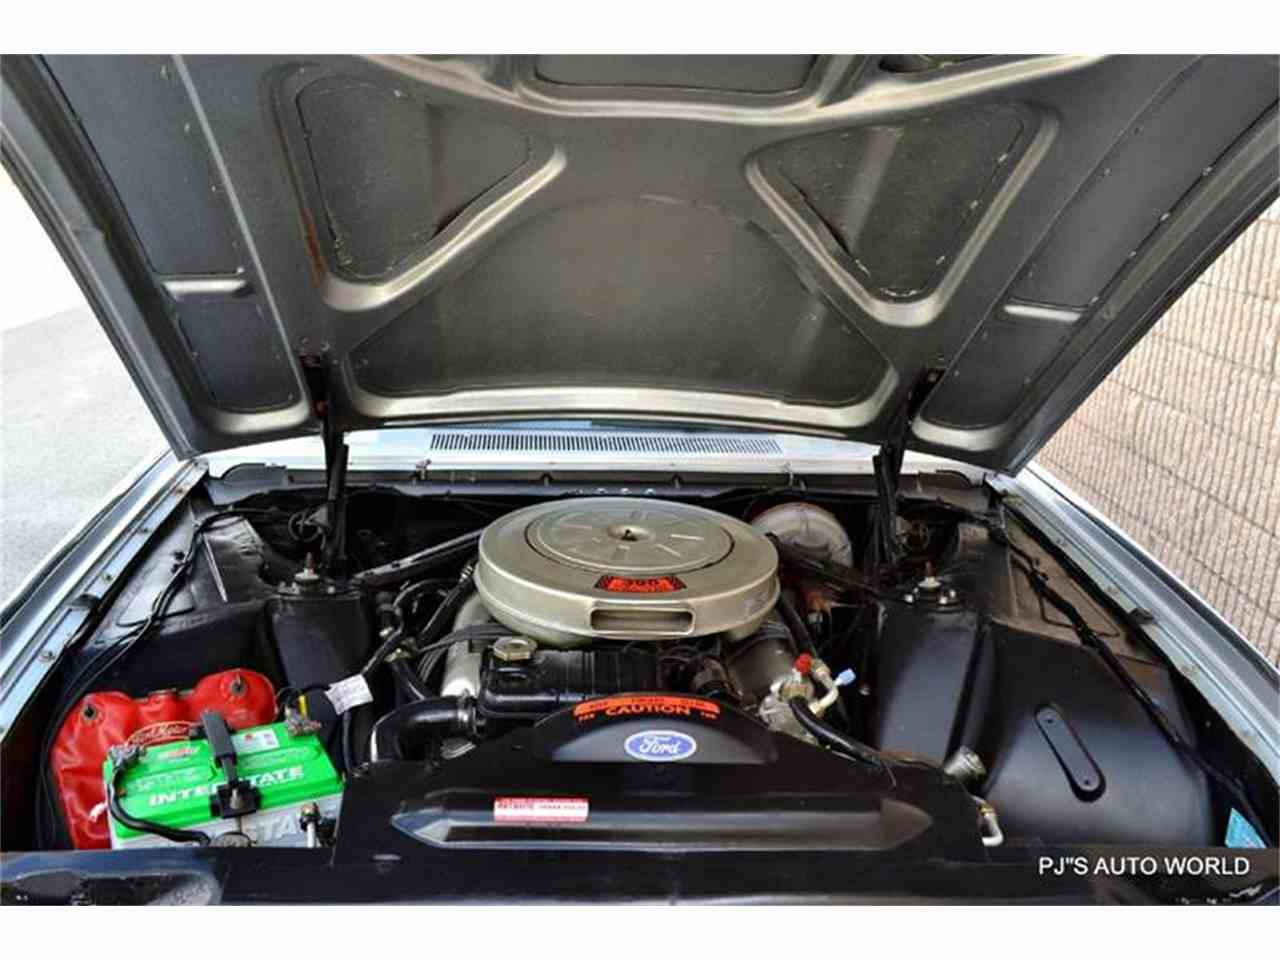 Large Picture of 1962 Ford Thunderbird located in Florida - $21,900.00 Offered by PJ's Auto World - J087